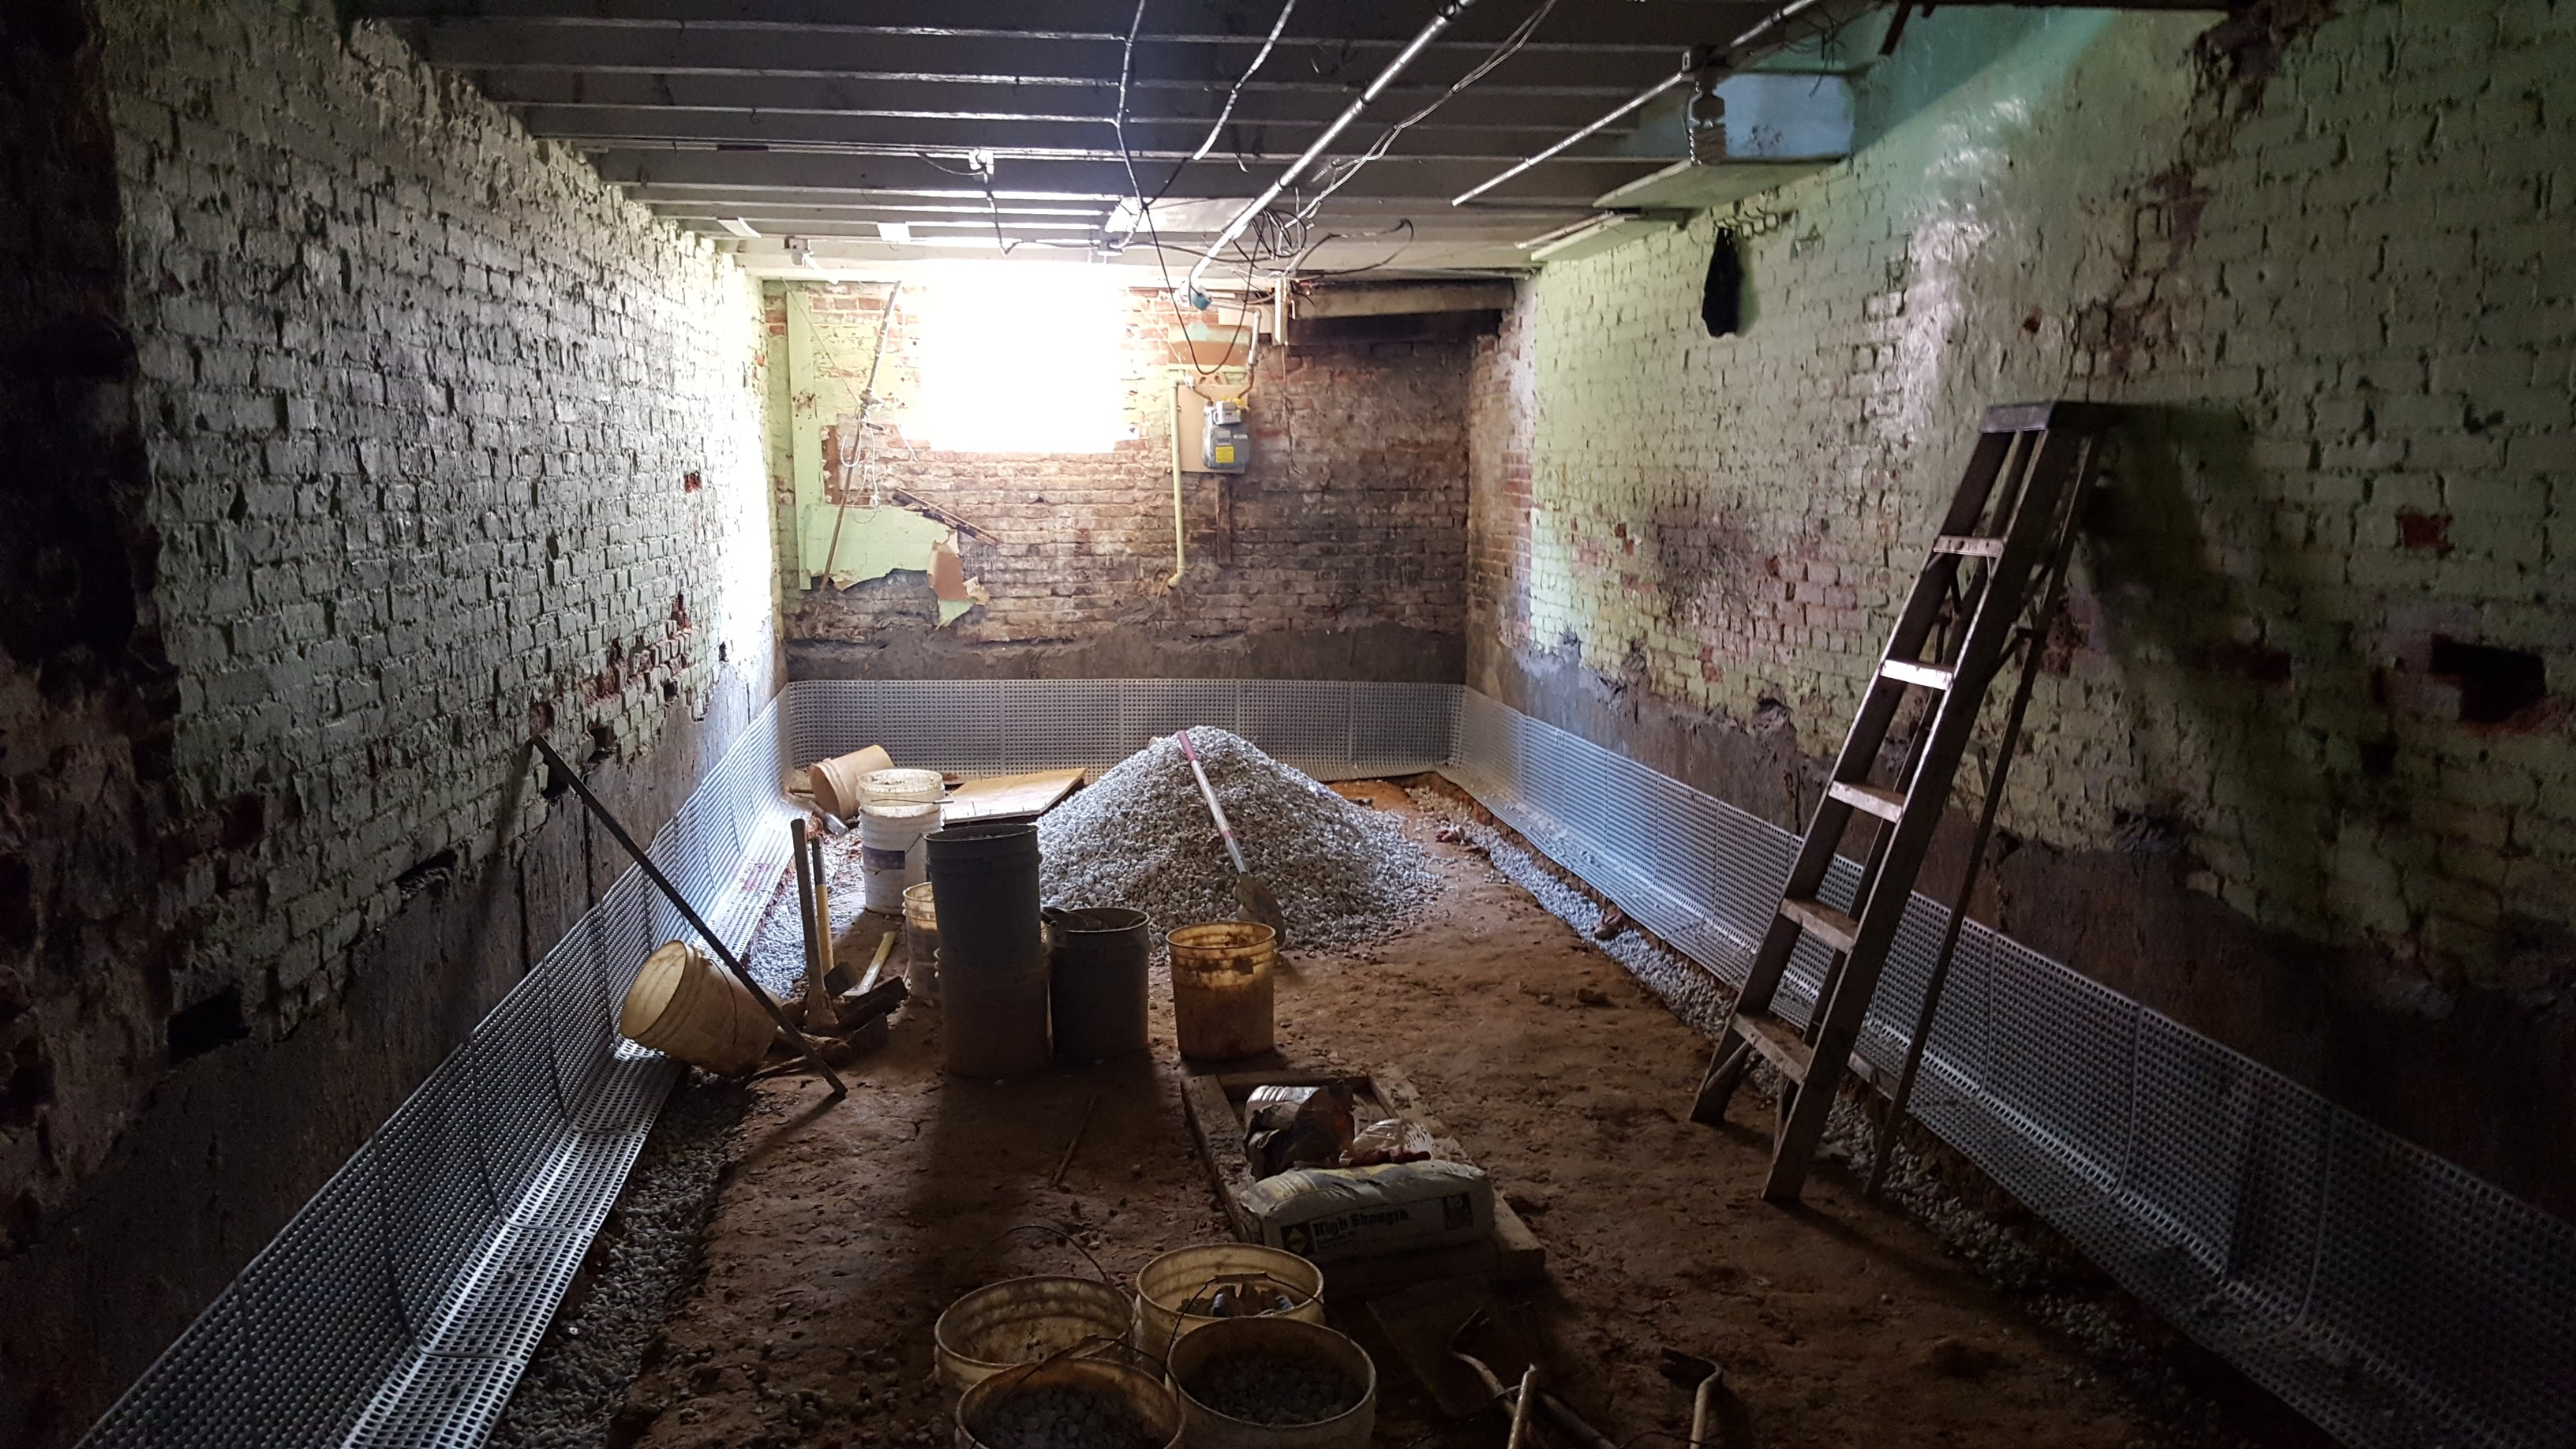 Digging Basements Adding New Height To Low Ceilings By - Digging basement cost